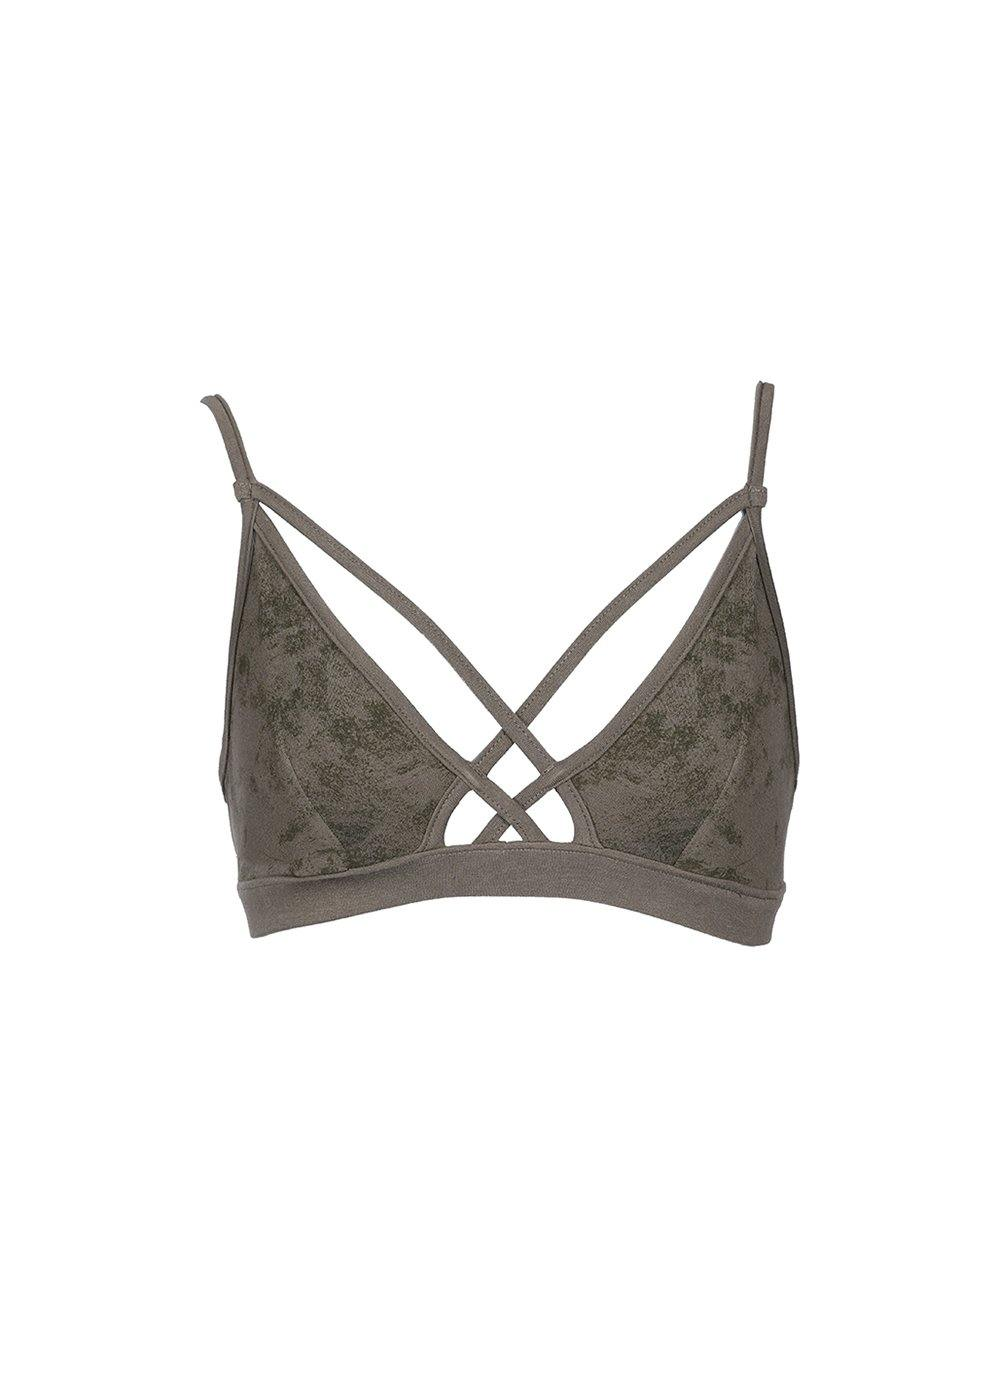 Nomads Hempwear Beloved Bra